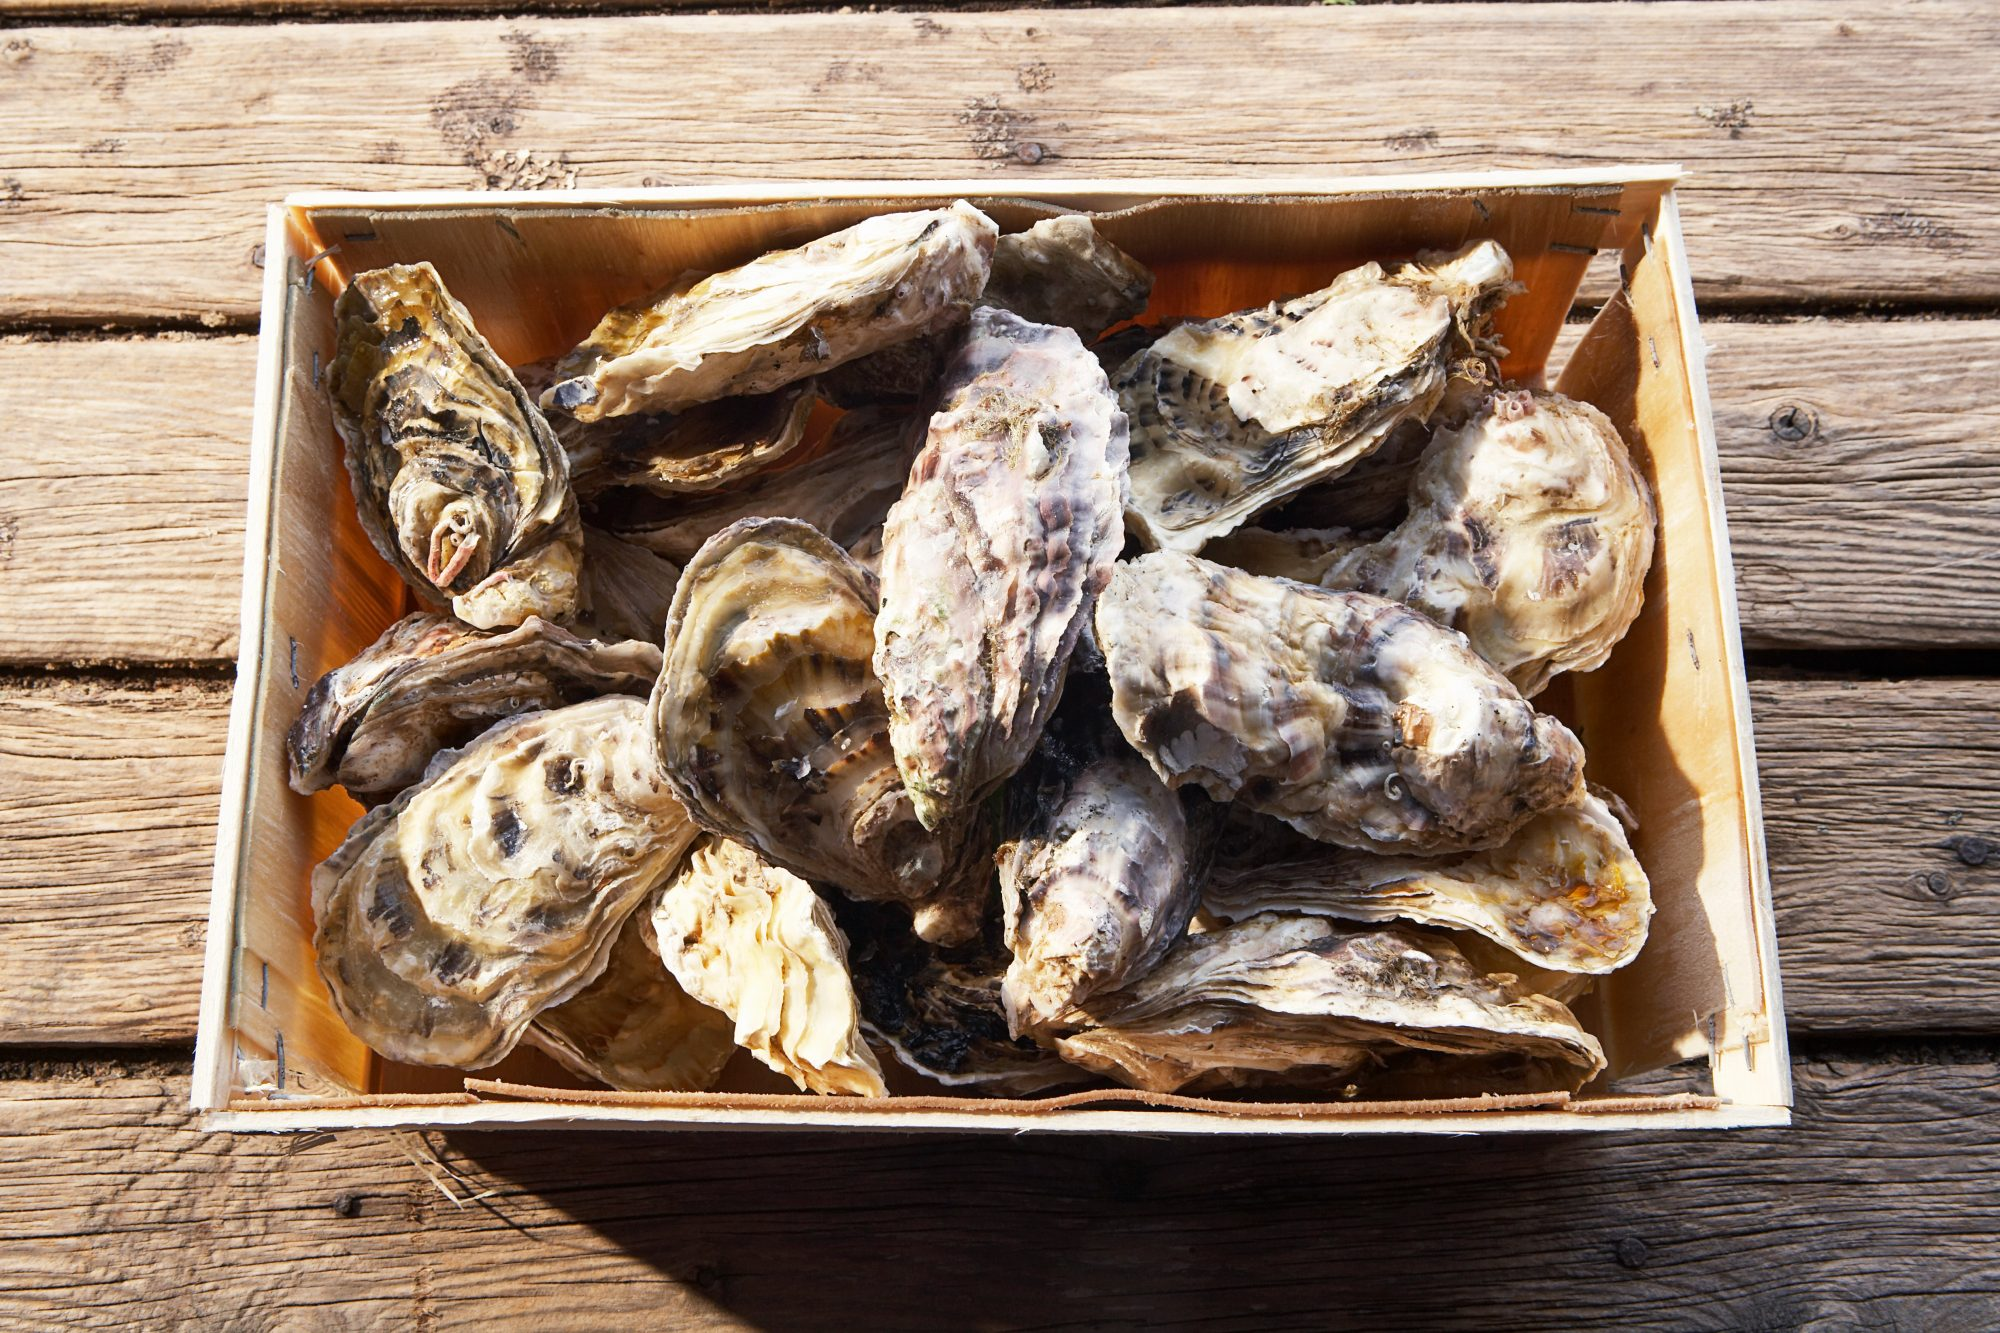 crate of fresh oysters on dock